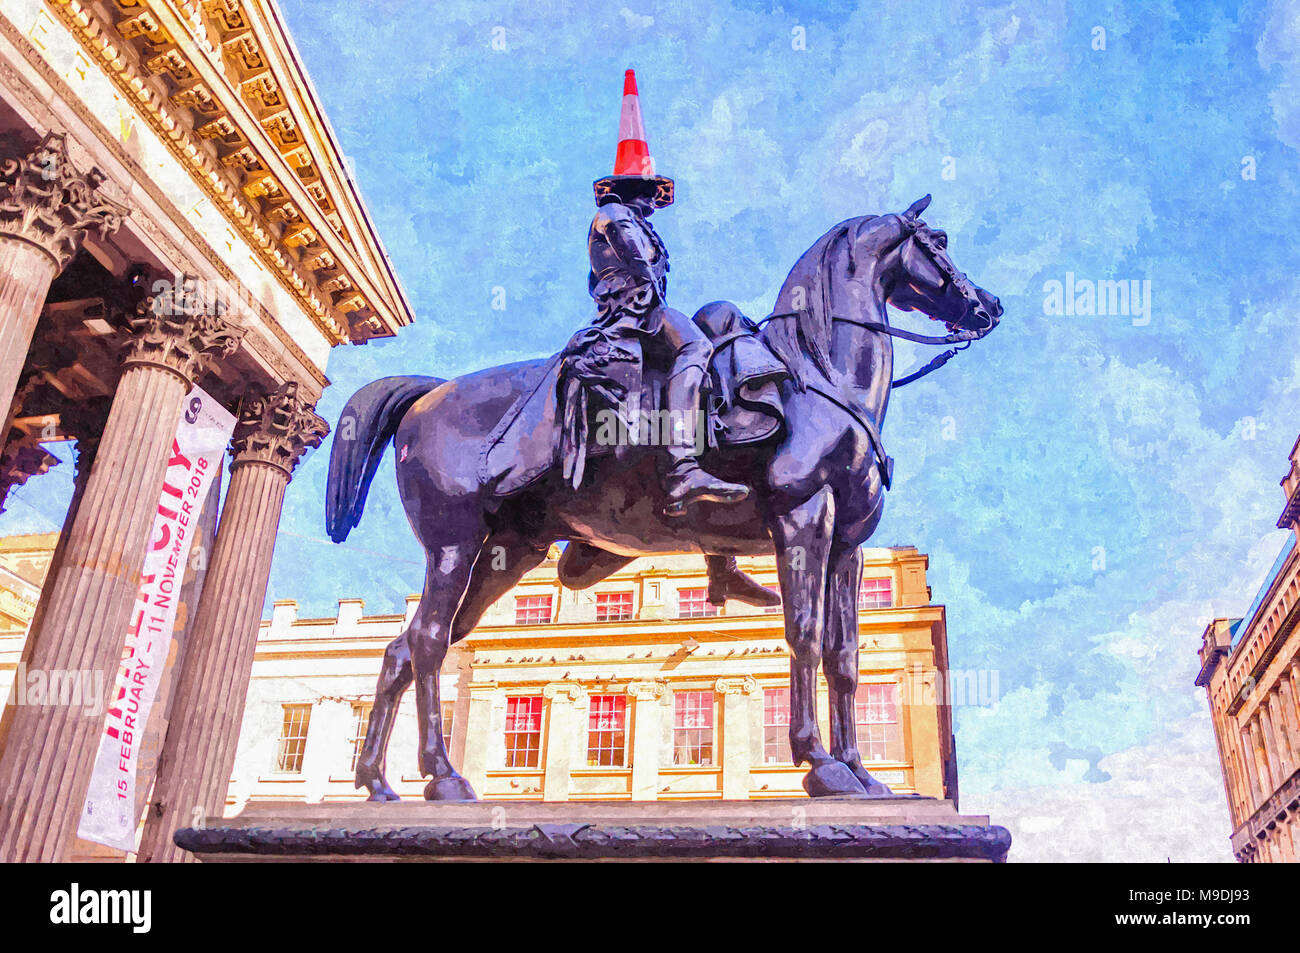 Digital oil painting of the Duke of Wellington statue with a traffic cone on his head in front of GOMA, Royal Exchange Square, Glasgow. - Stock Image